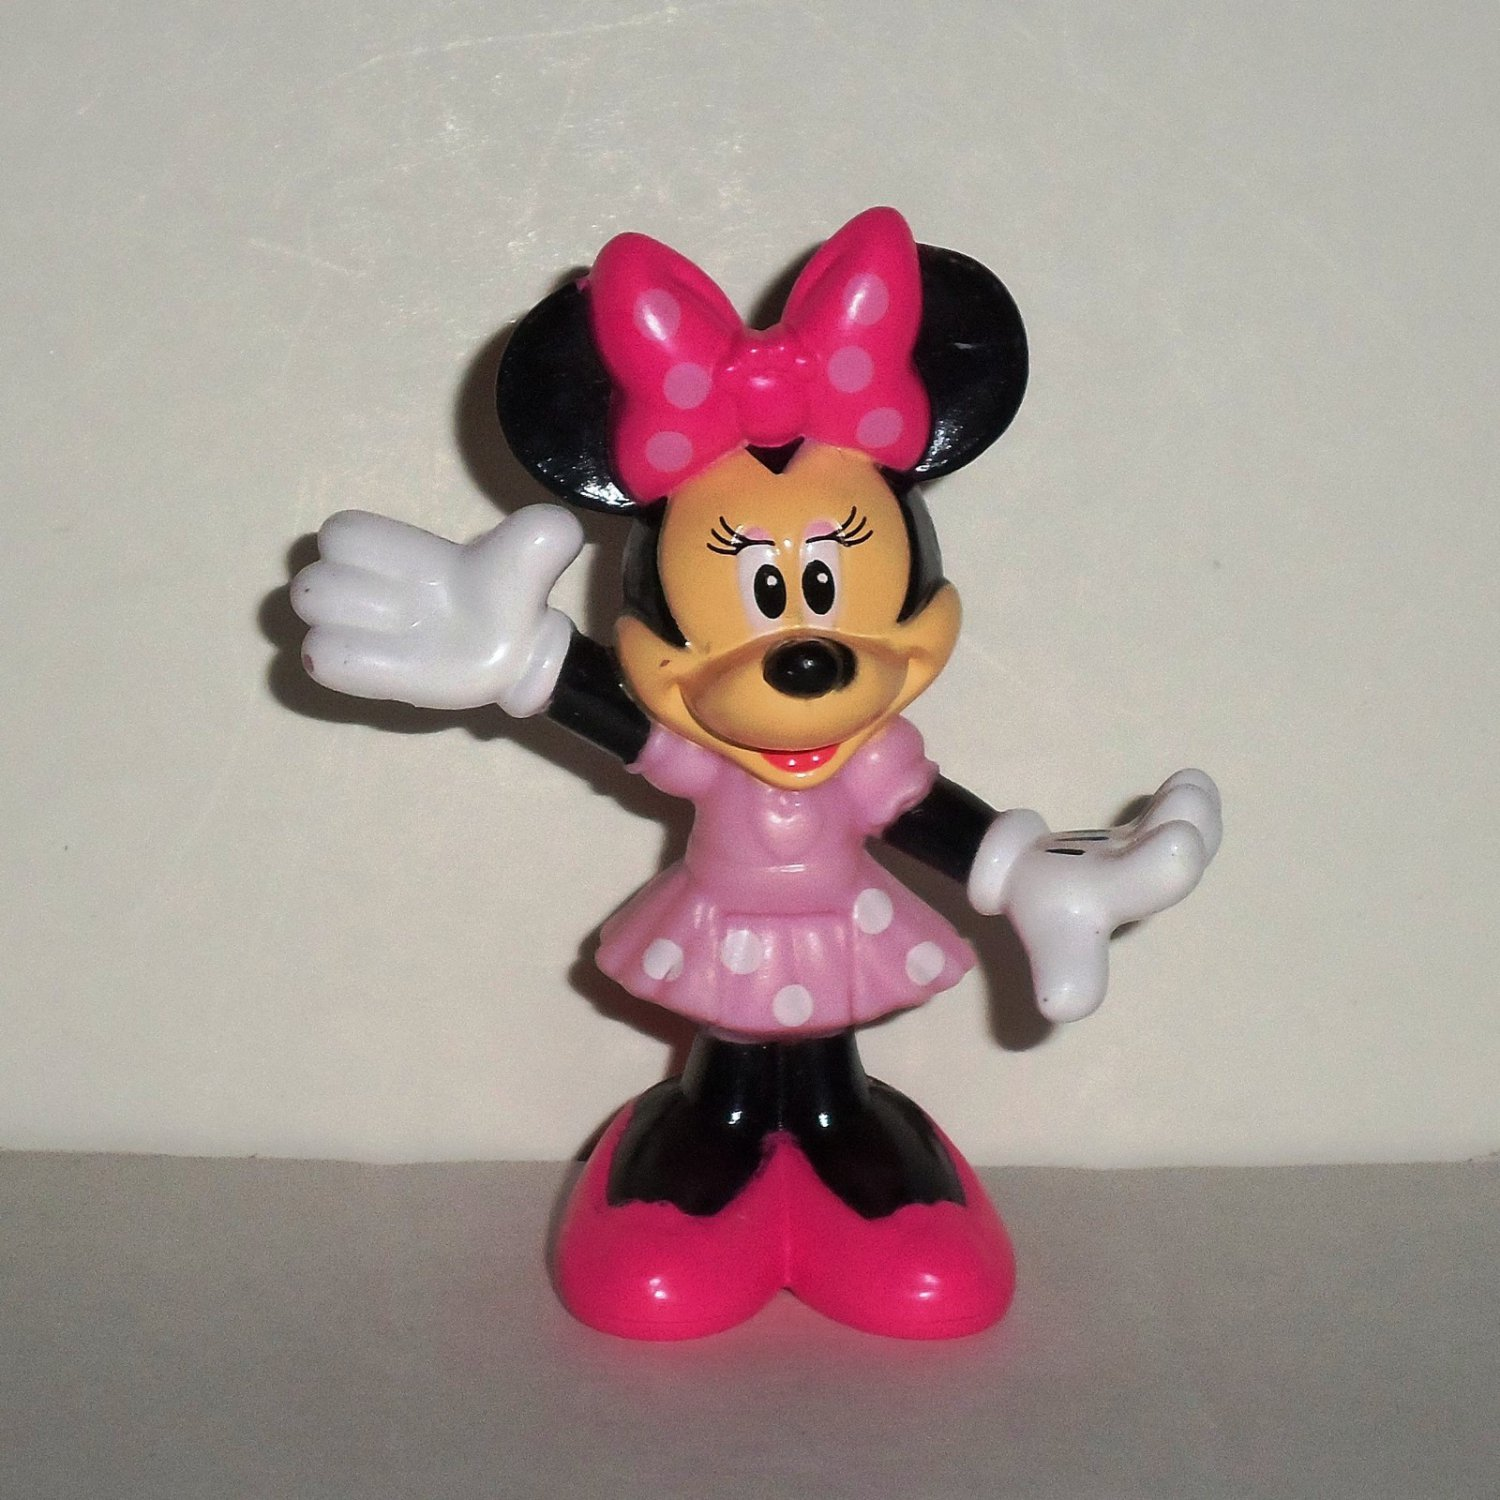 Fisher-Price Disney Minnie Mouse Pink Figure from X2756 Minnie's Bow-Tique Pet Tour Van Loose Used